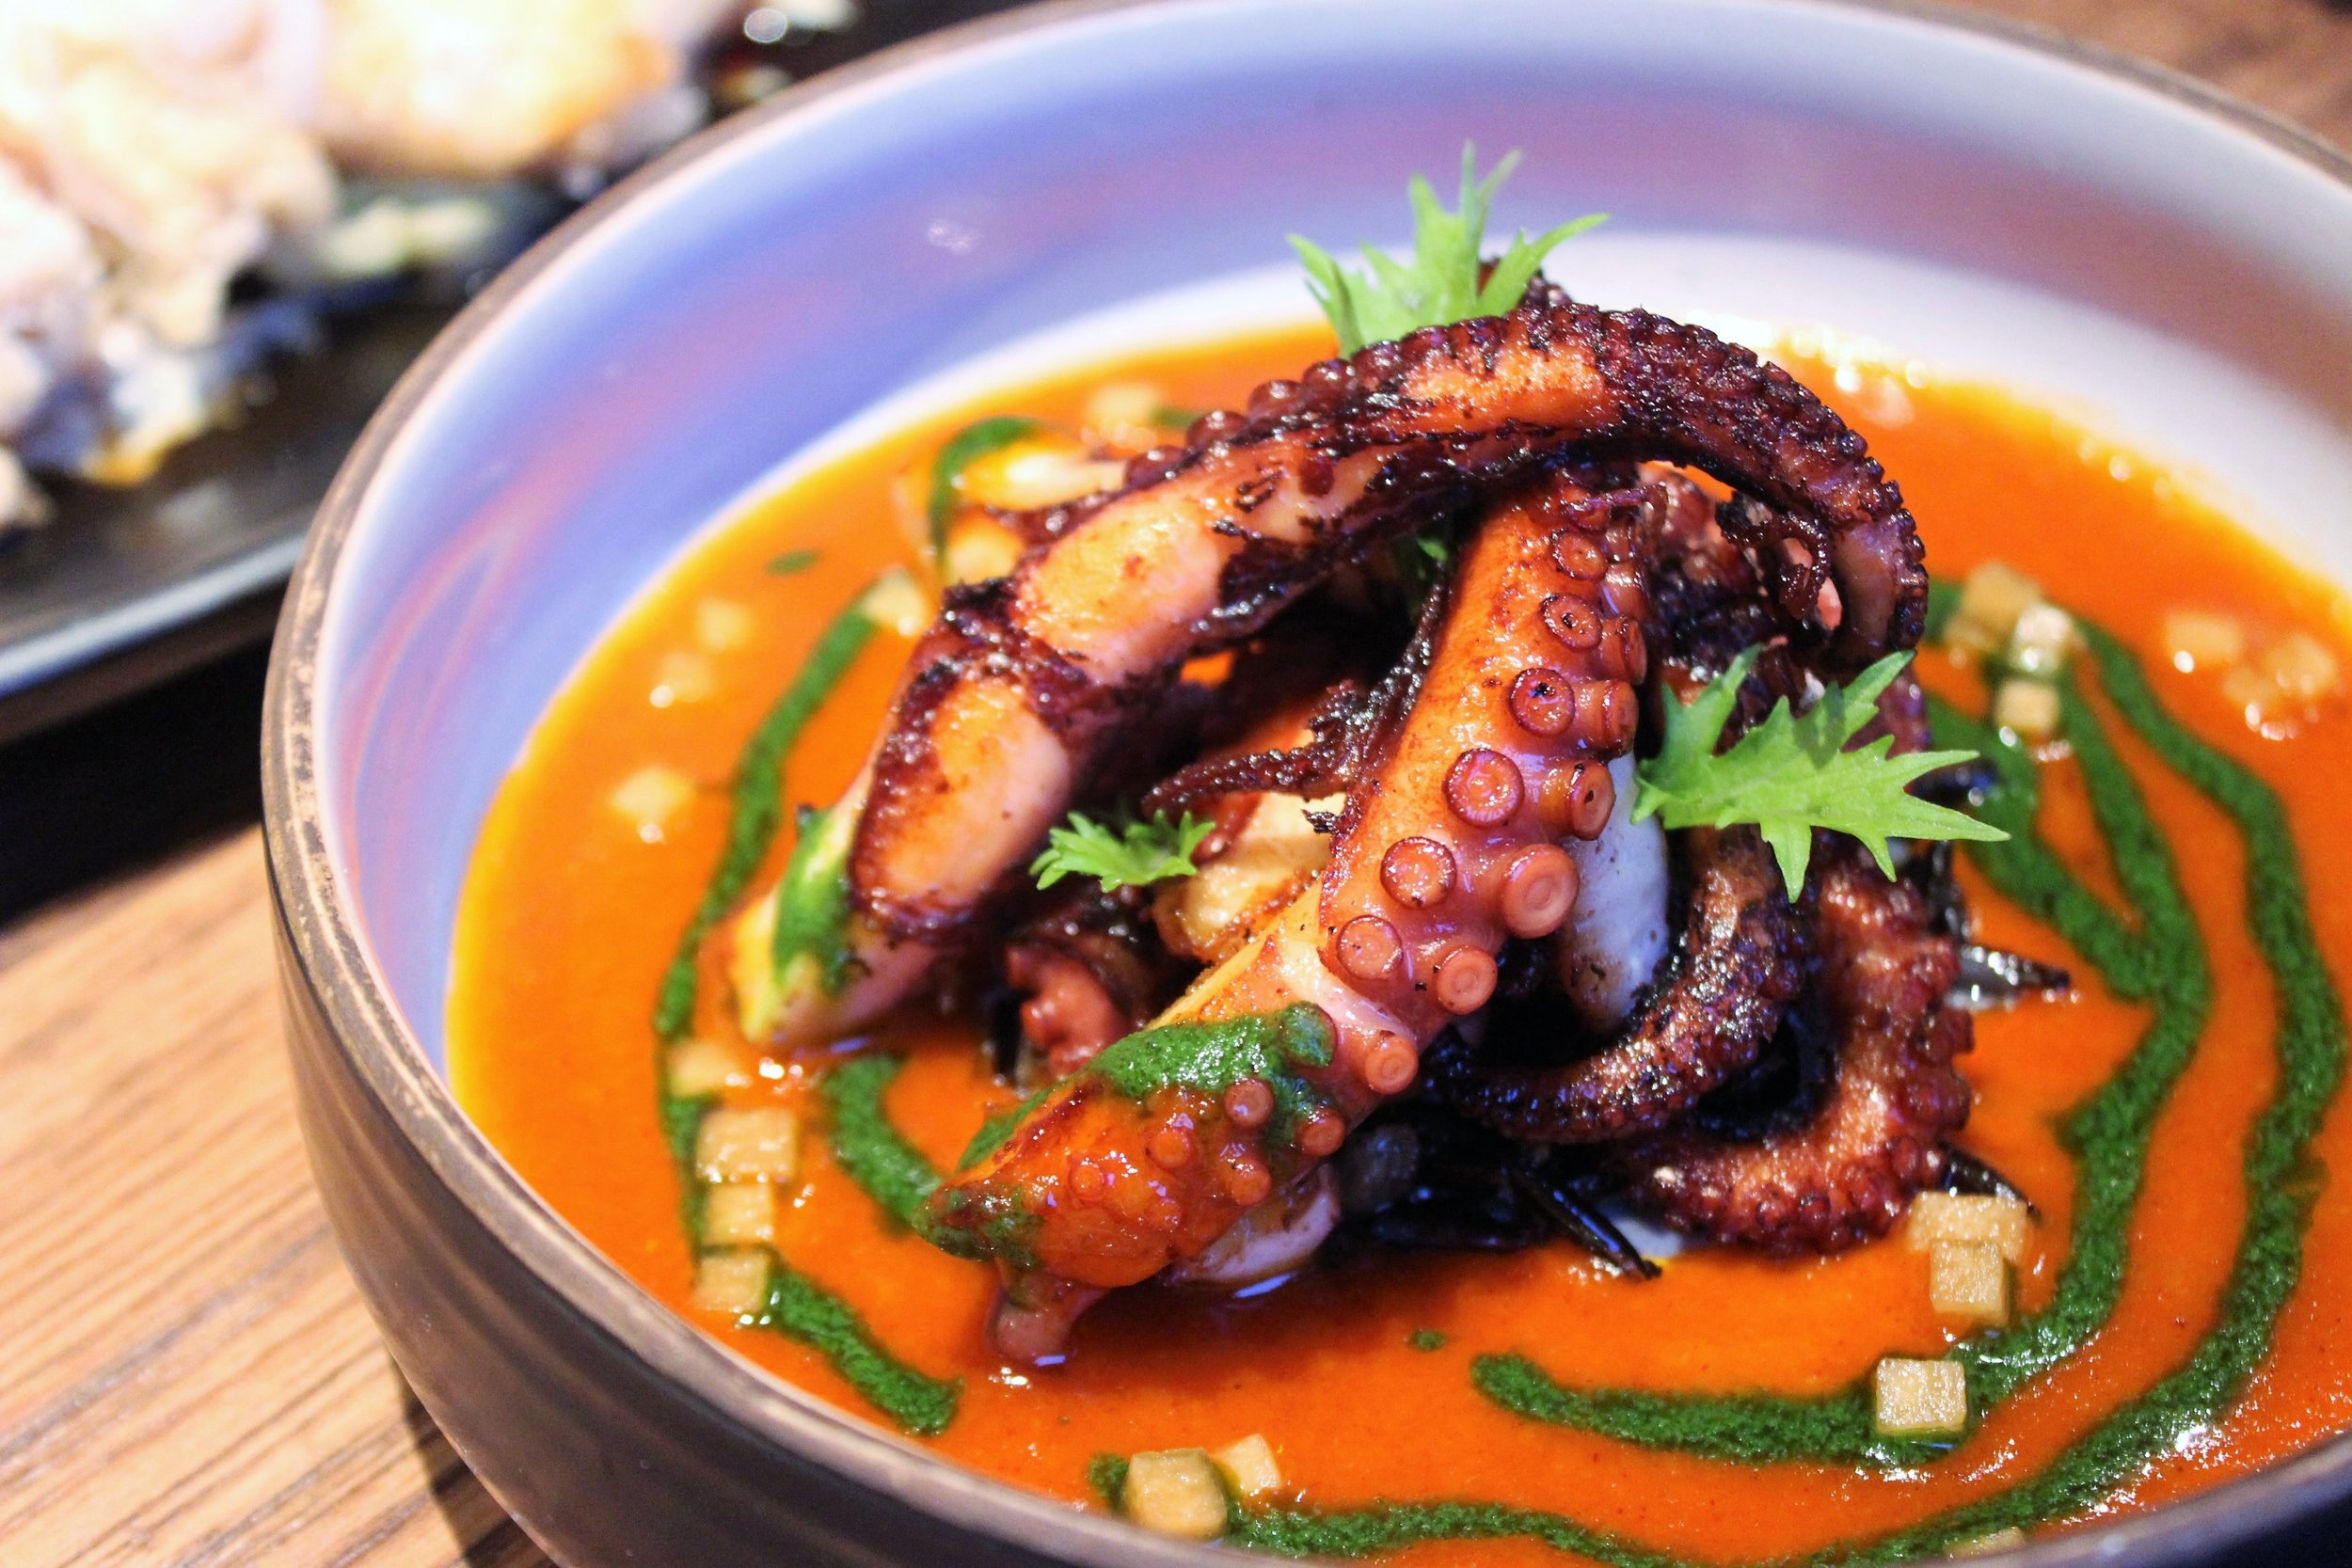 Slow Cooked Baby Octopus with Butter Gochujang at Oiji in New York City